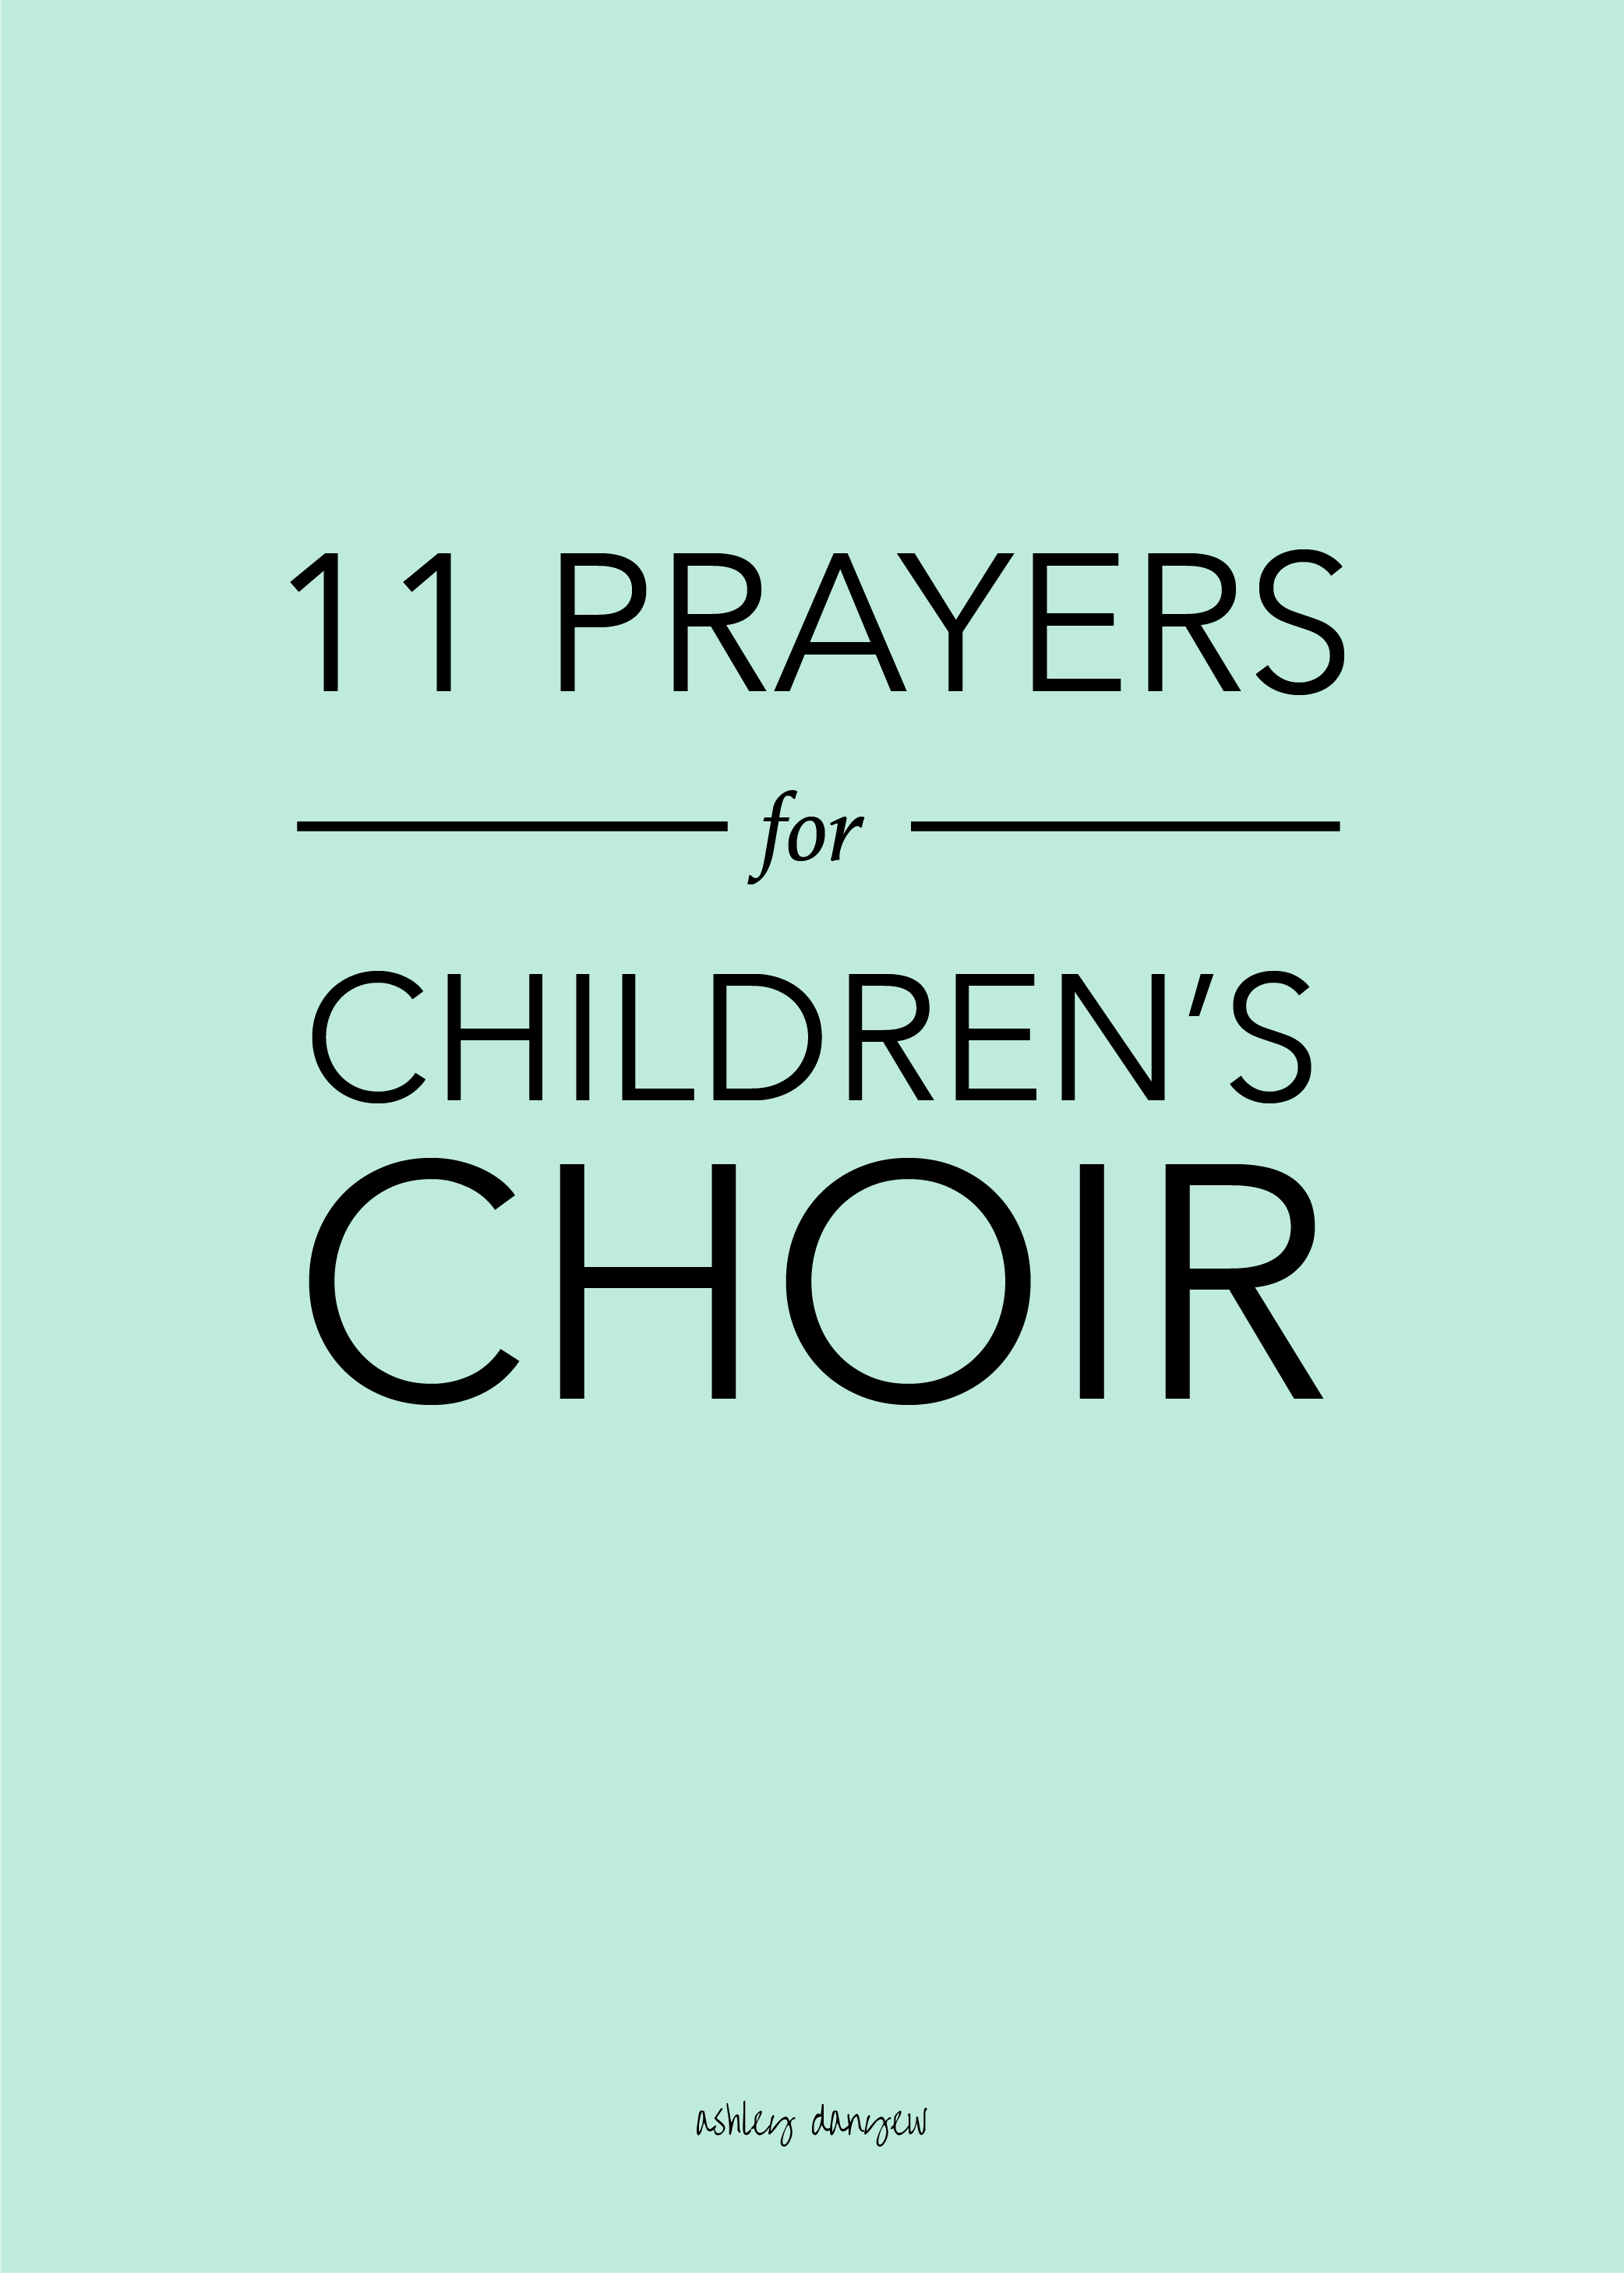 11 Prayers for Children's Choir